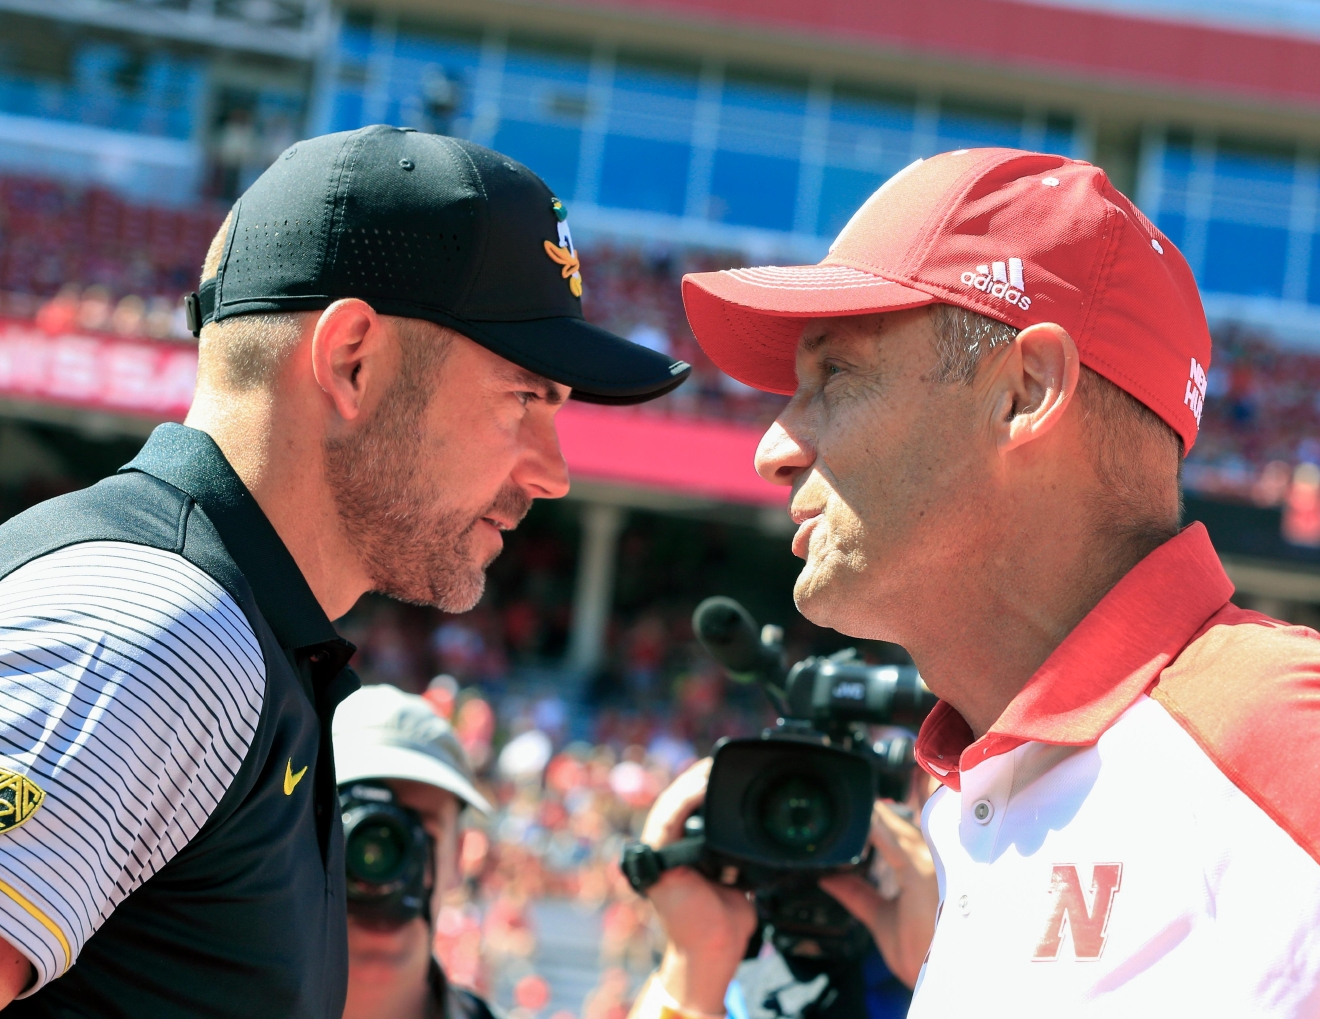 Oregon head coach Mark Helfrich, left, and Nebraska head coach Mike Riley meet before an NCAA college football game in Lincoln, Neb., Saturday, Sept. 17, 2016. (AP Photo/Nati Harnik)